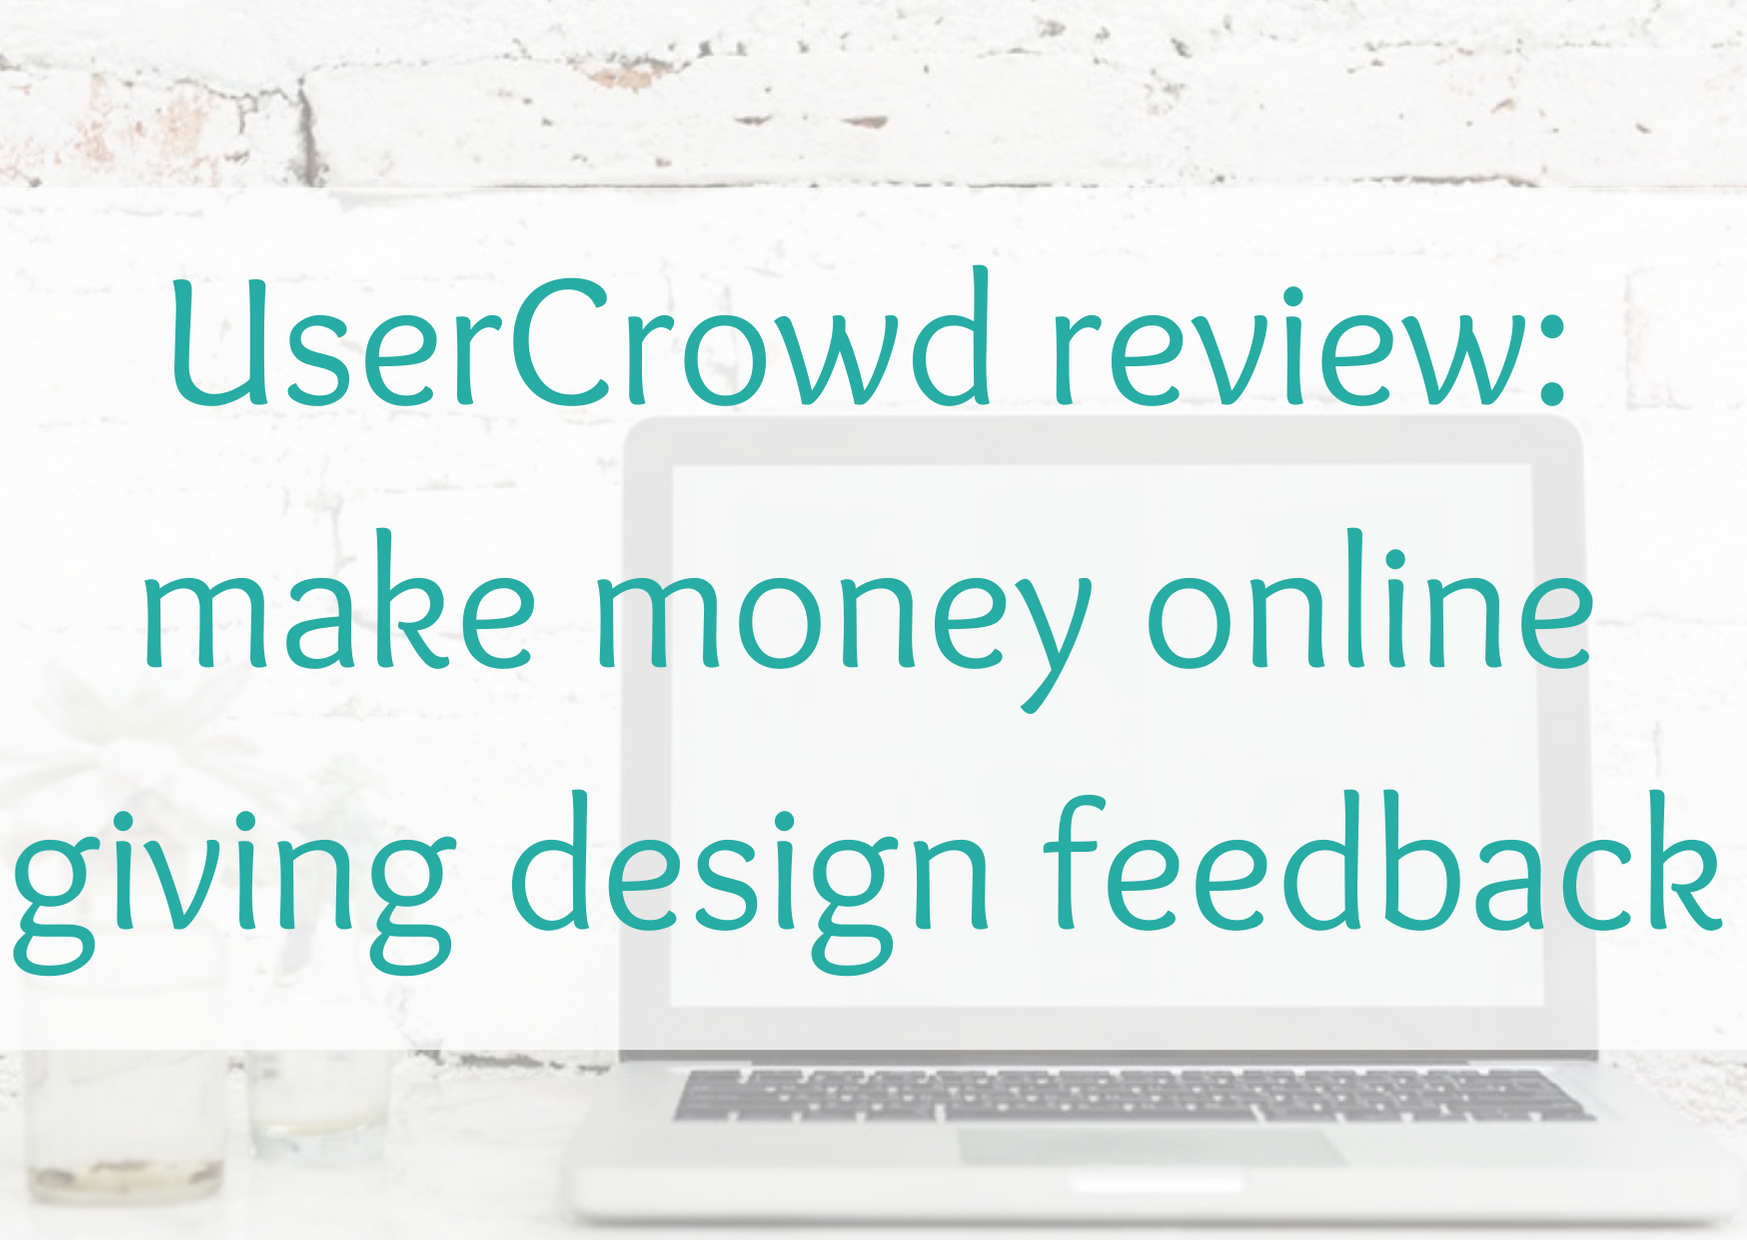 UserCrowd review: make money online giving design feedback